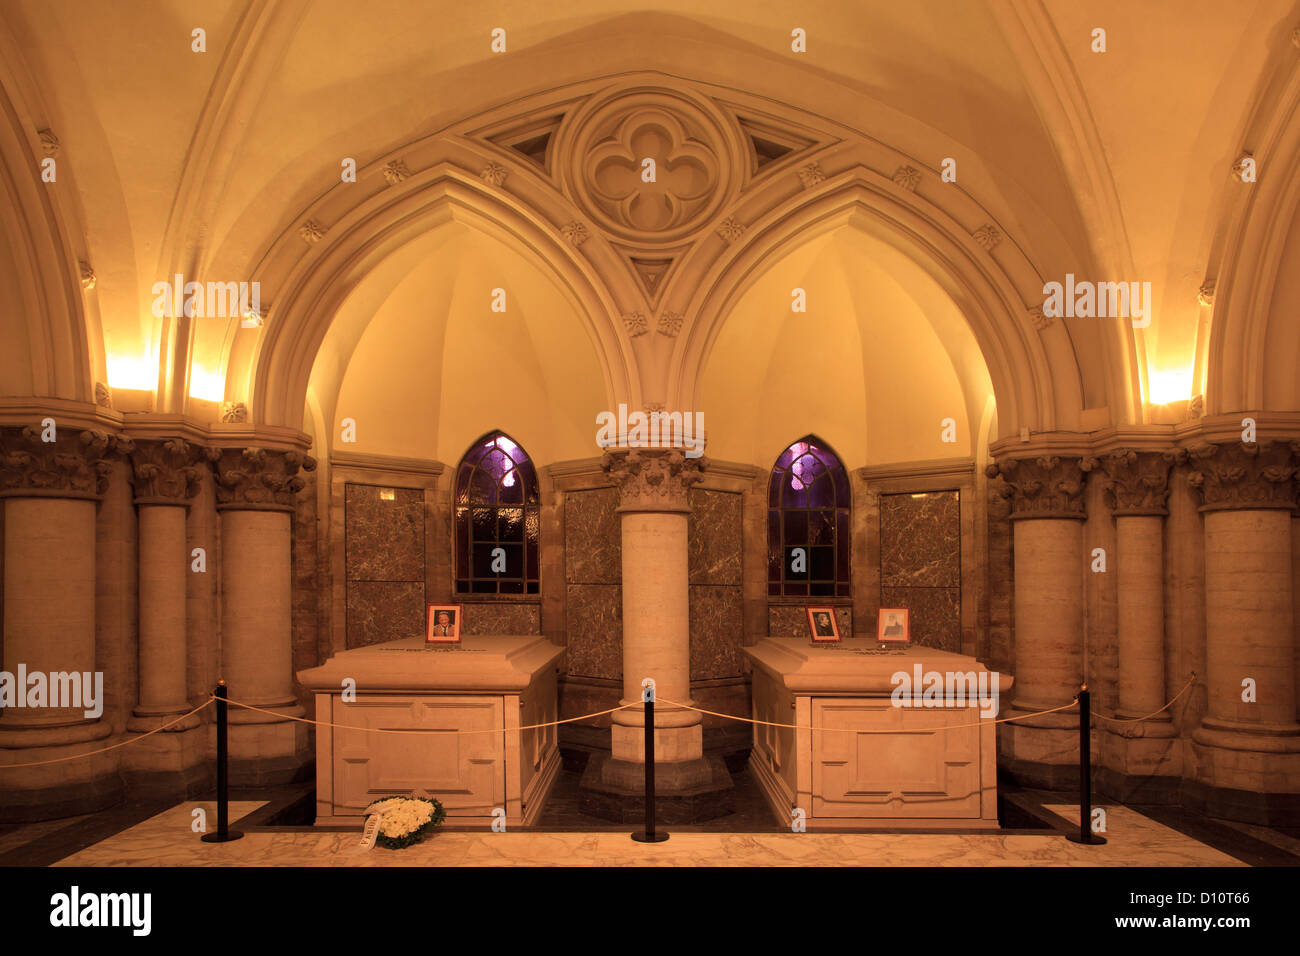 The graves of King Baudouin I & King Leopold II and Queen Marie Henriette at the Royal Crypt in Laeken, Belgium - Stock Image